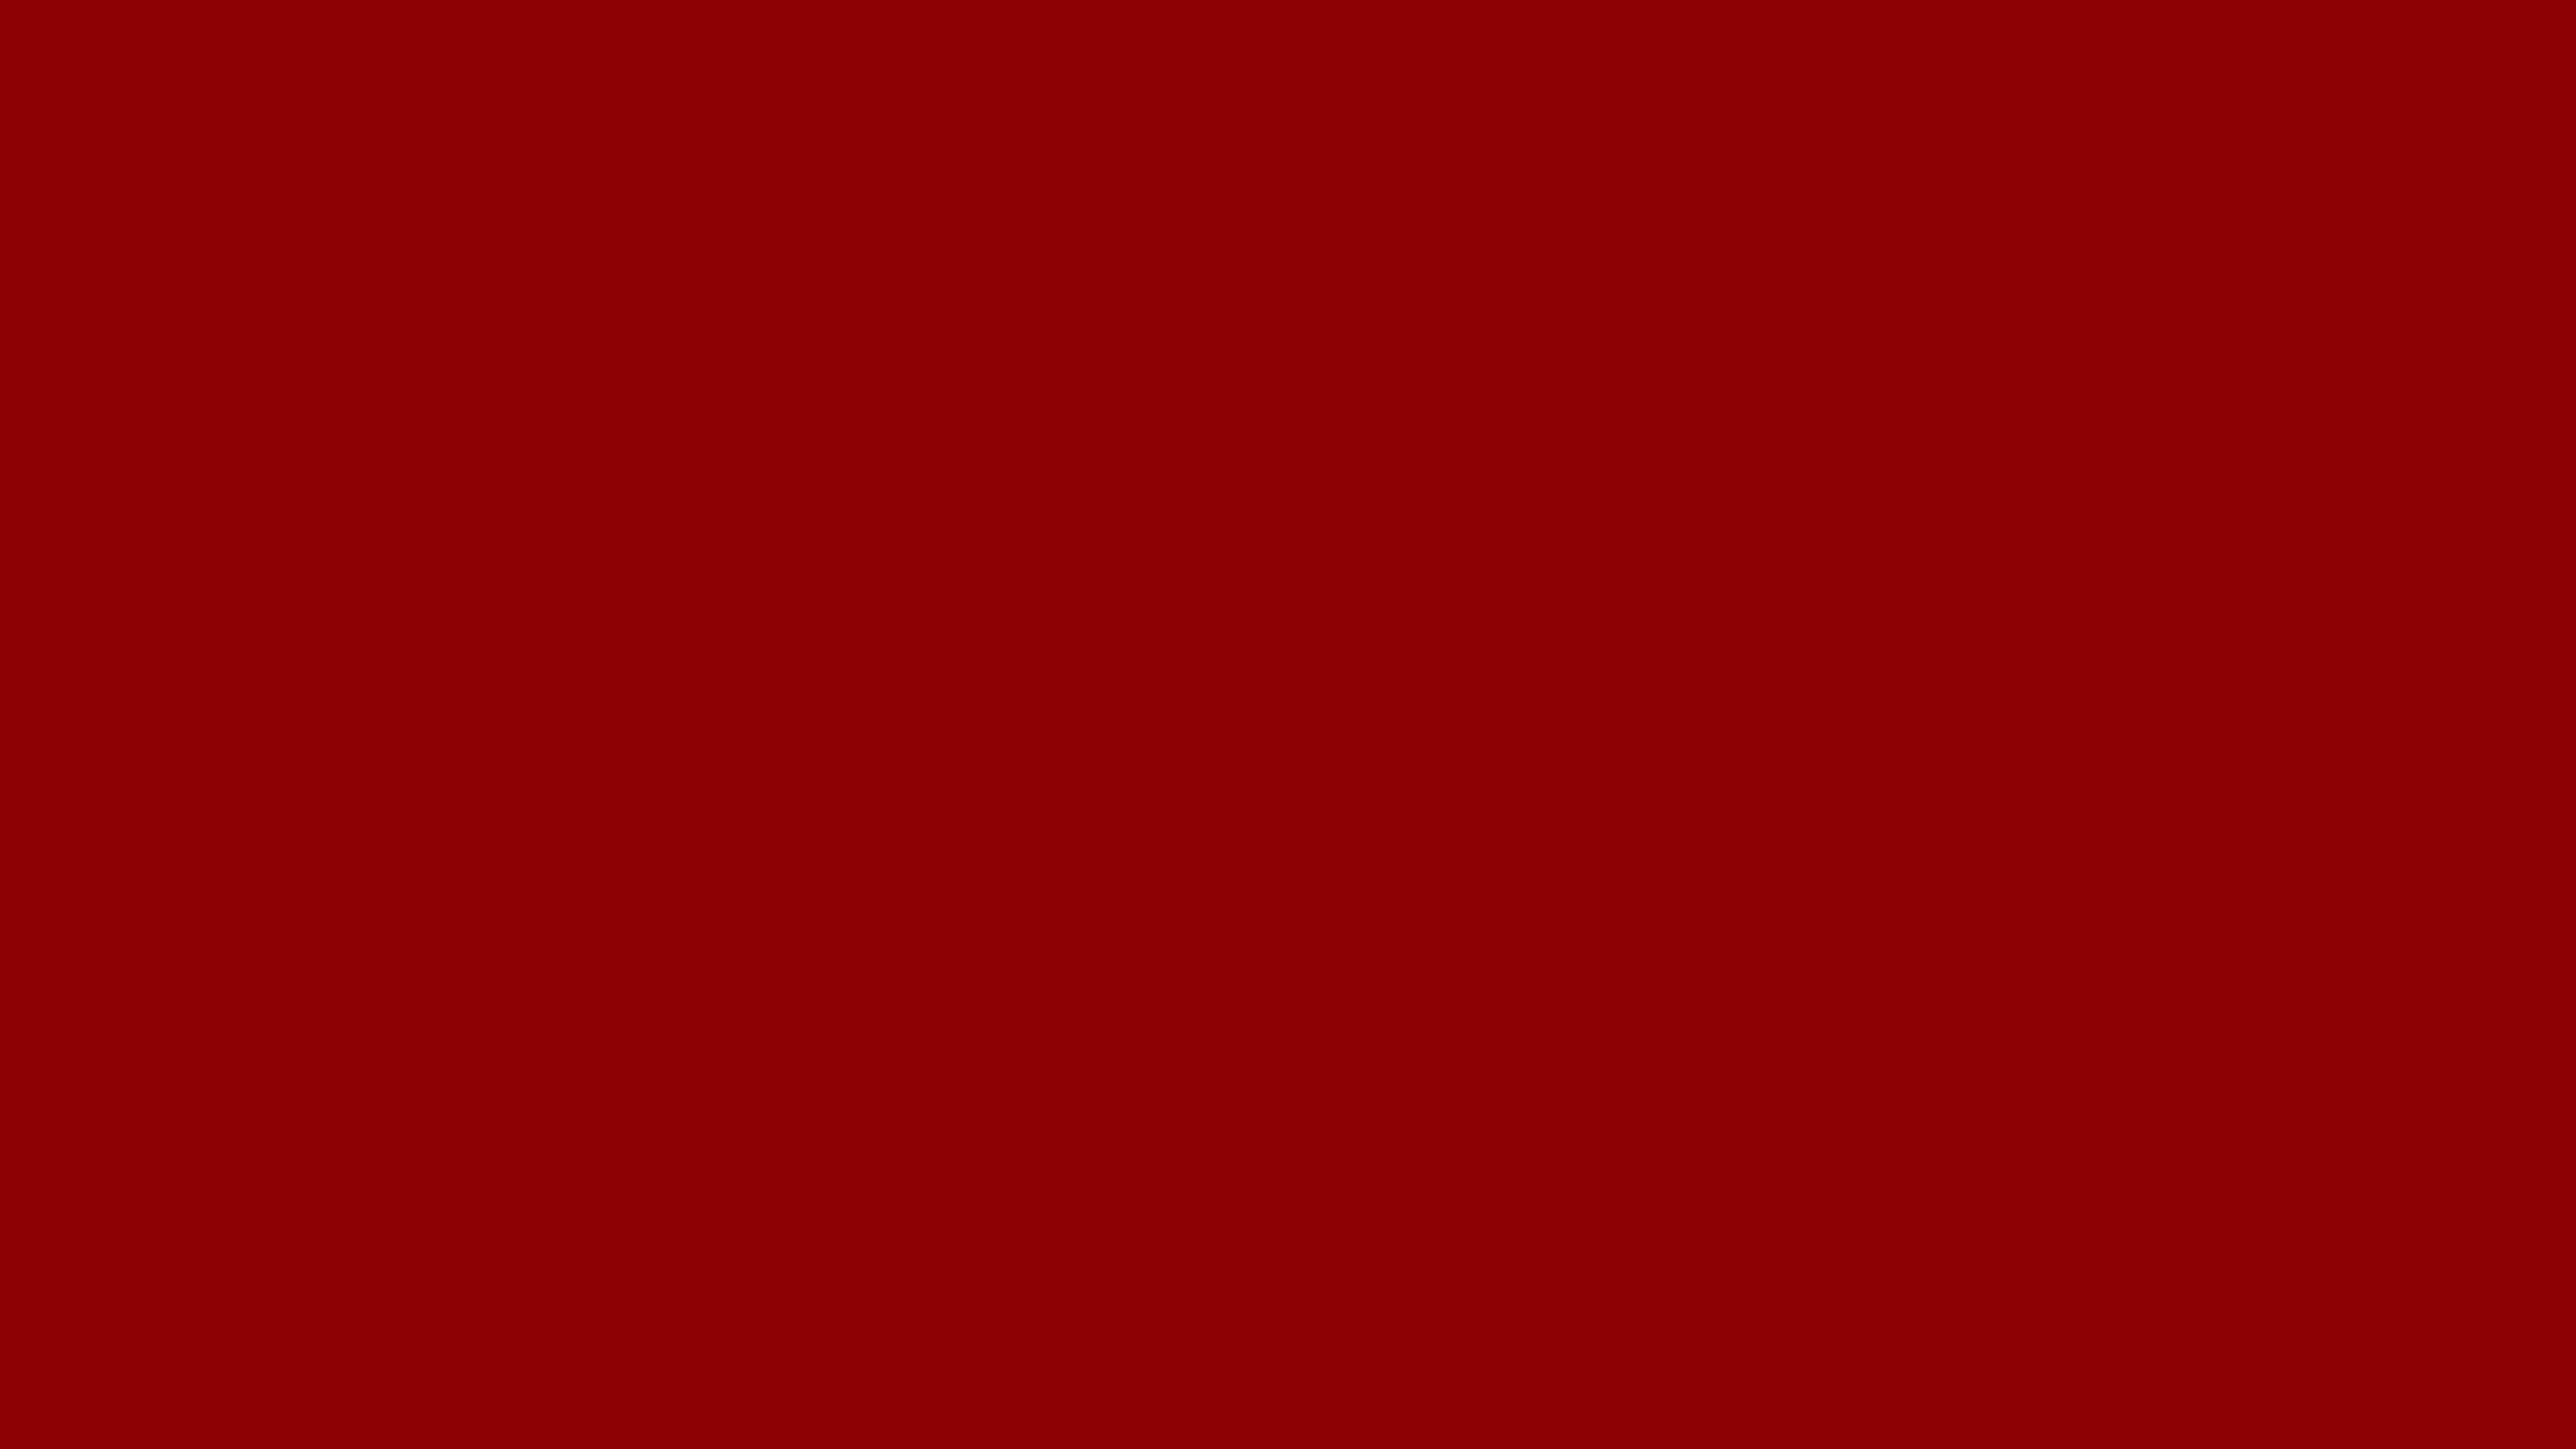 7680x4320 Dark Red Solid Color Background